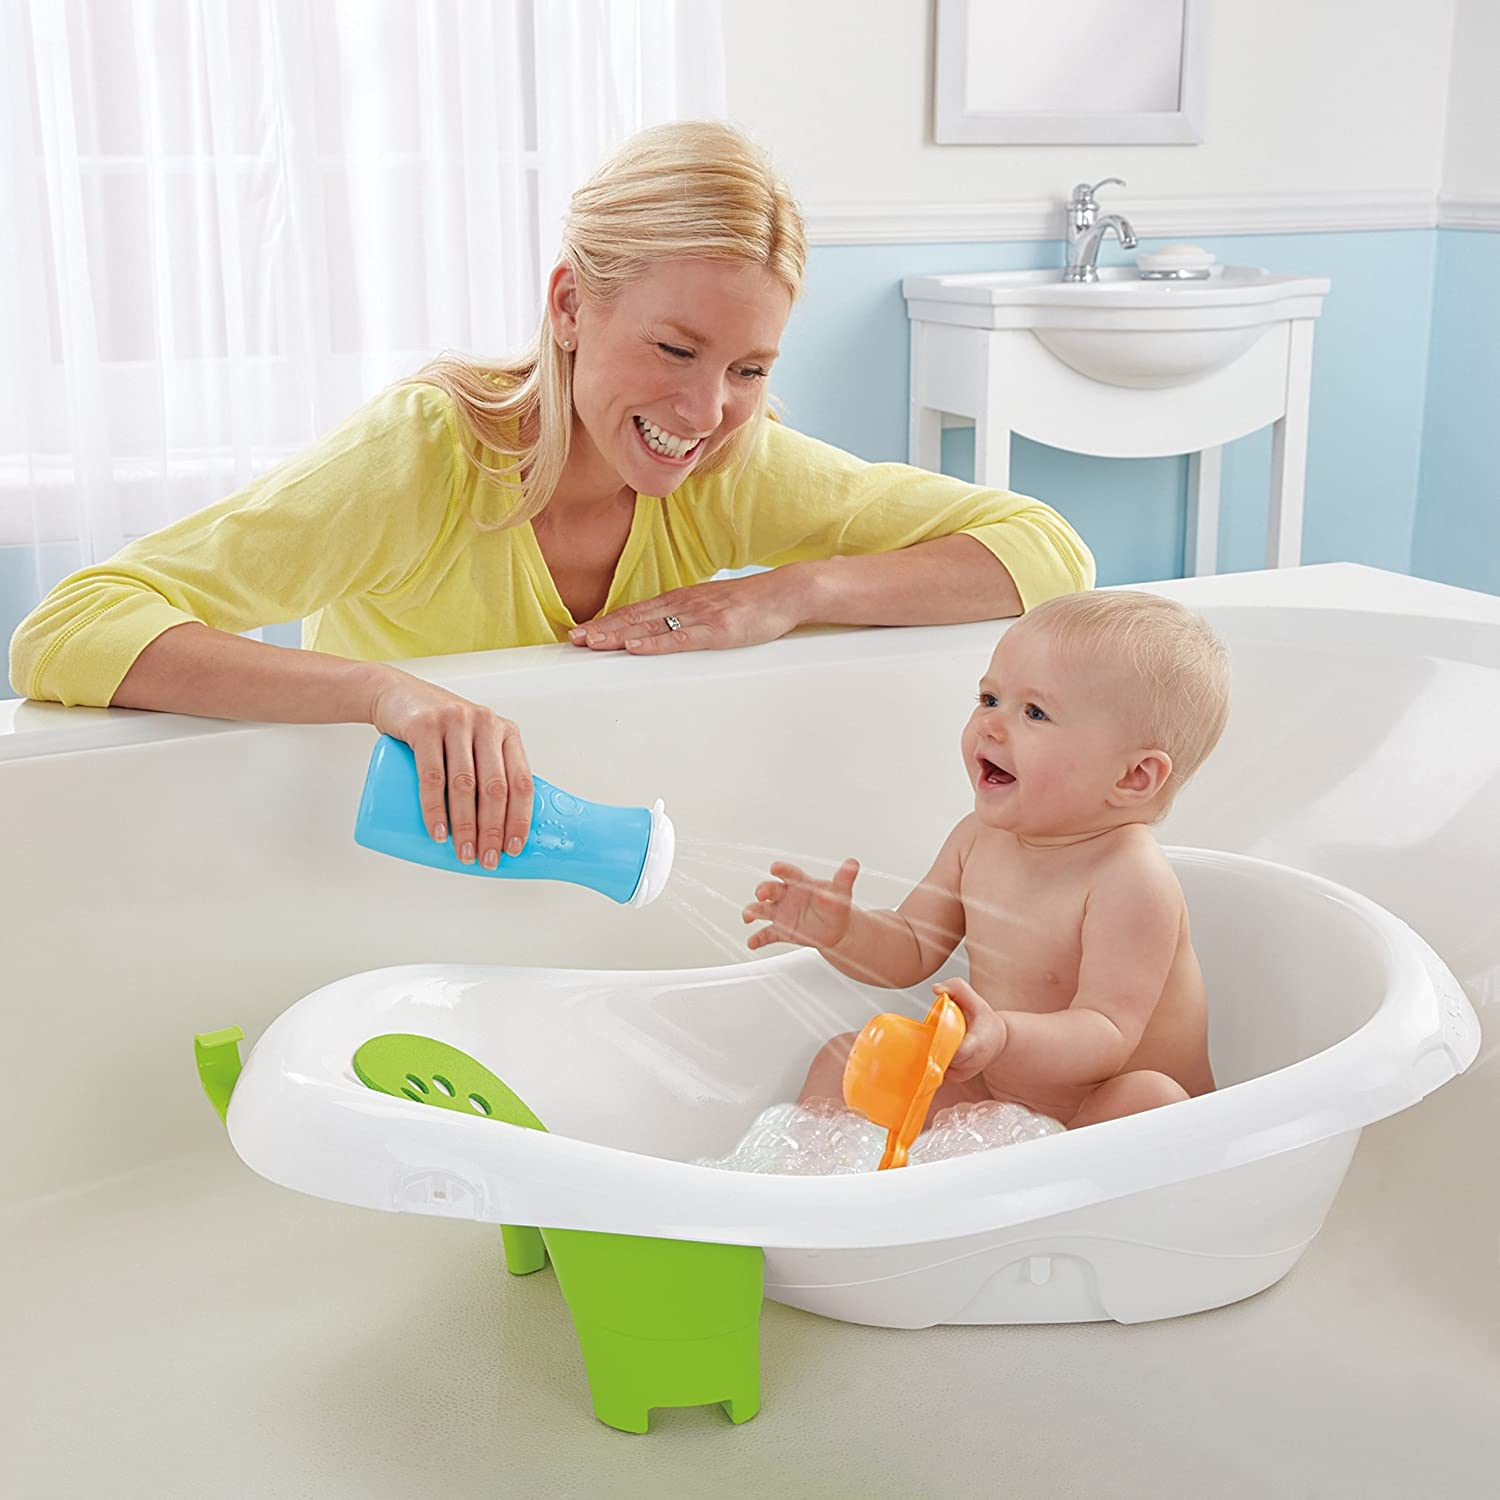 Amazon.com: Fisher-Price 4-in-1 Sling n Seat Tub: Baby